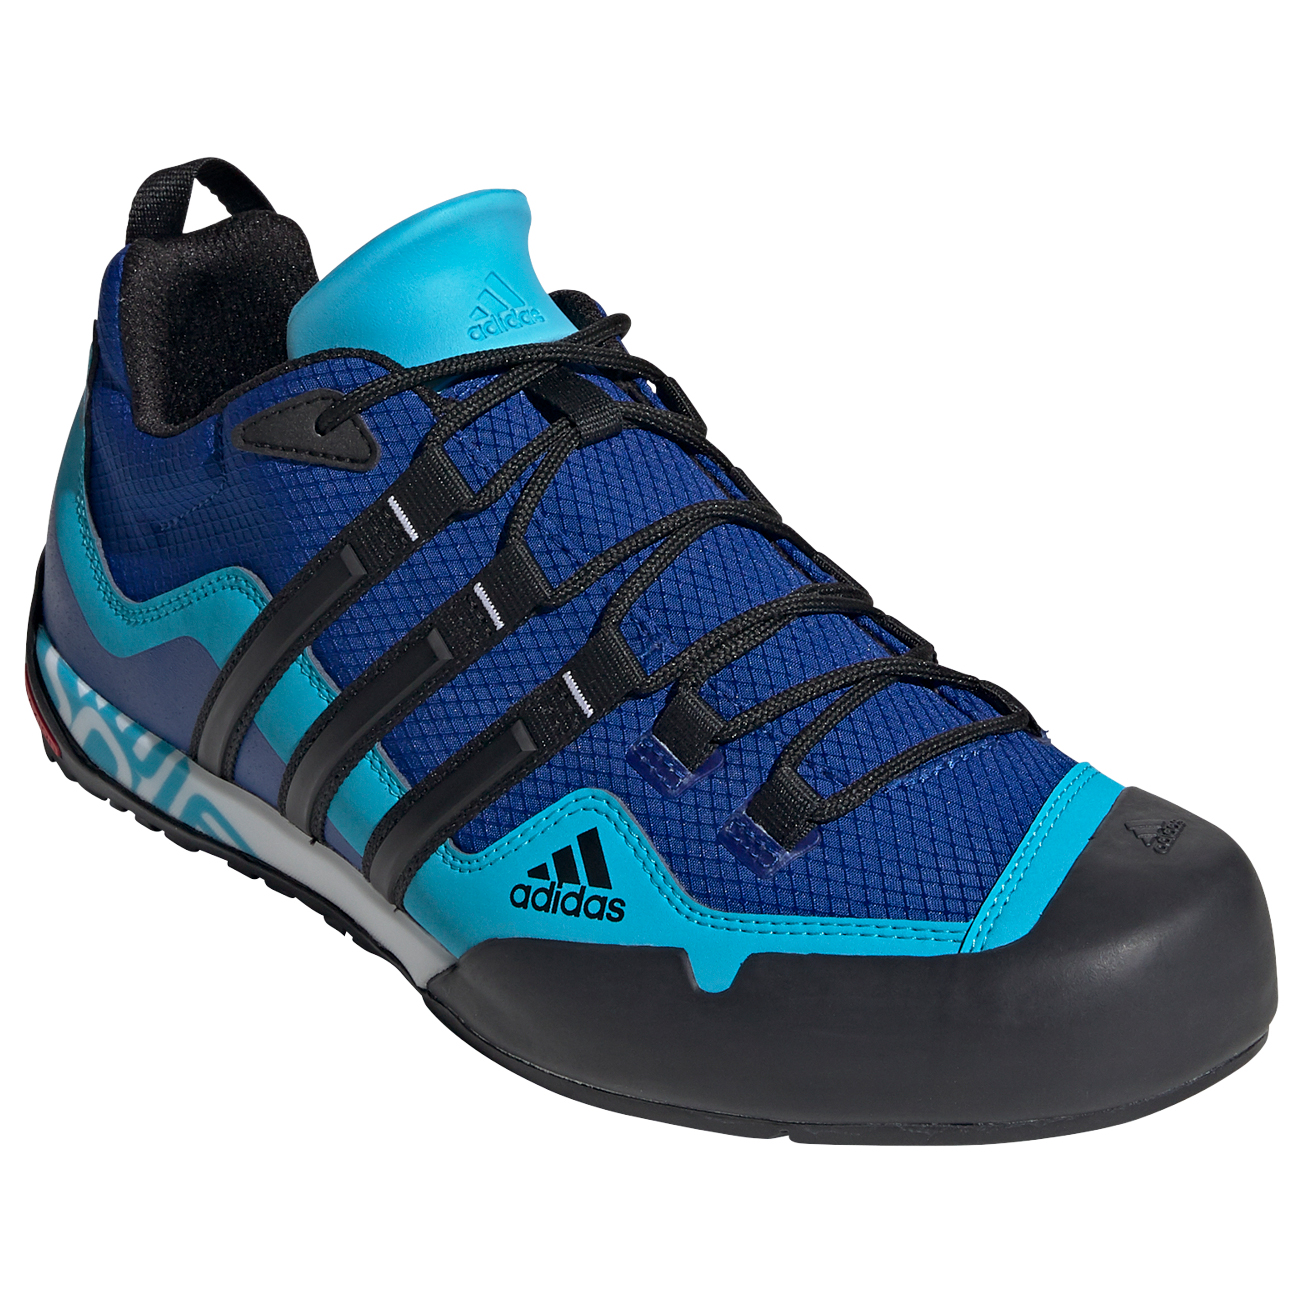 Adidas Terrex Swift Solo - Approach shoes | Free EU Delivery ...